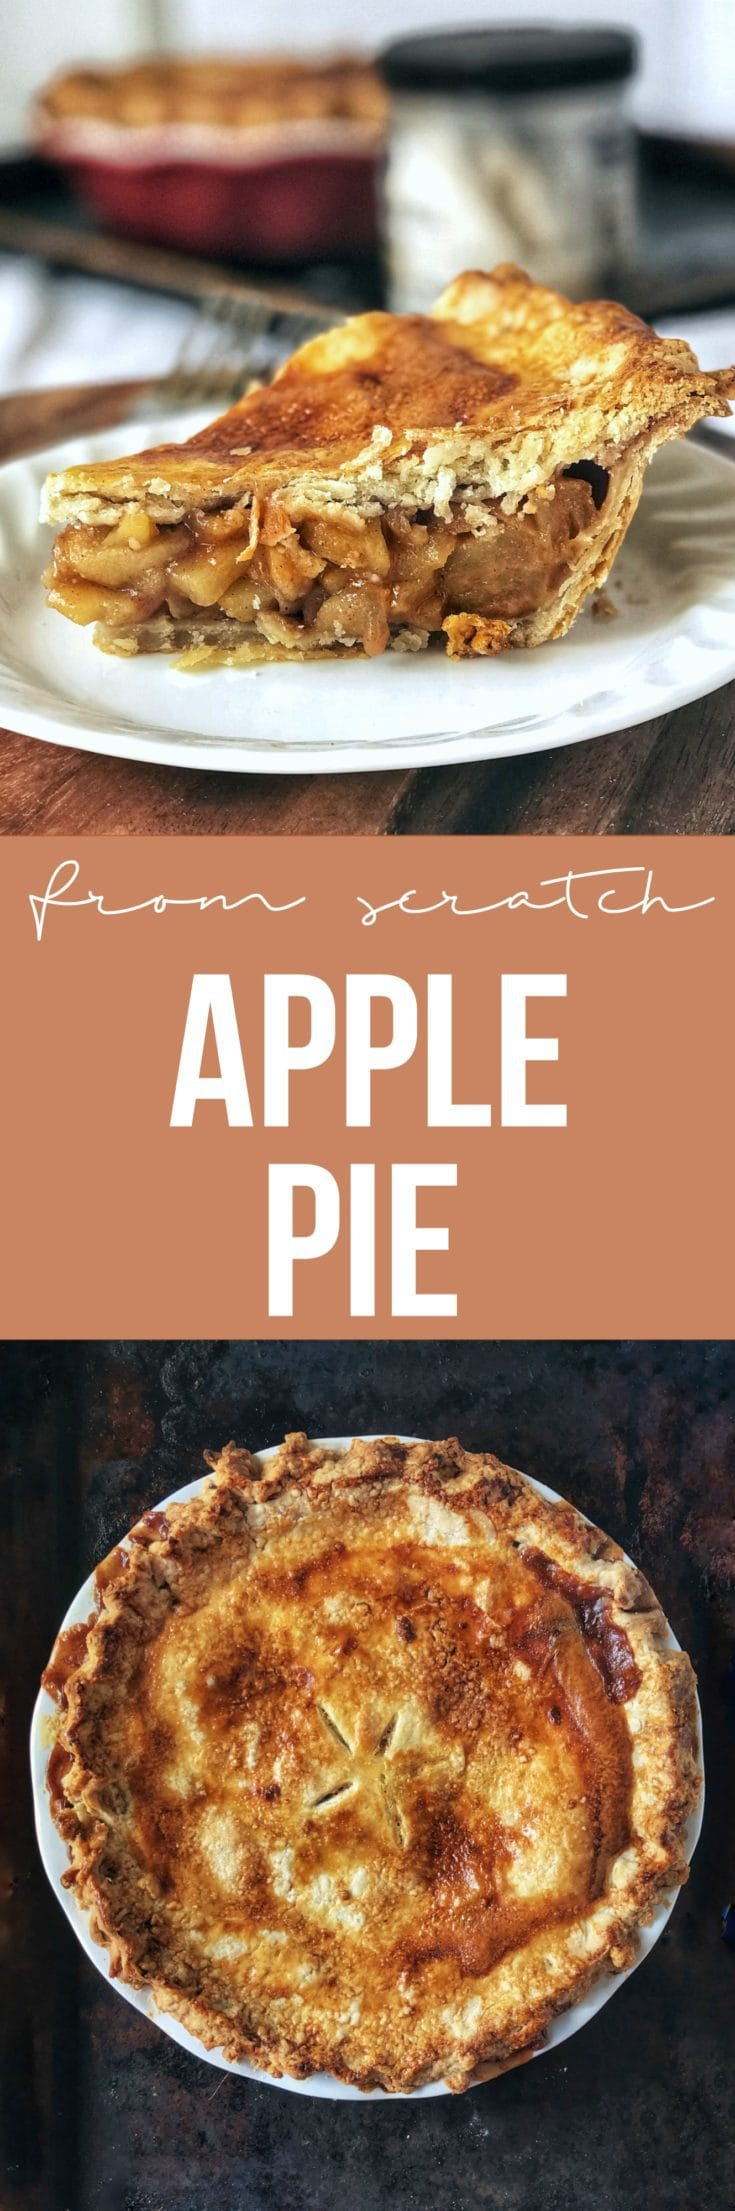 Apple pie from scratch that slices beautifully with amazingly flaky crusts, spiced apple filling that holds its shape, and is perfect for any holiday!